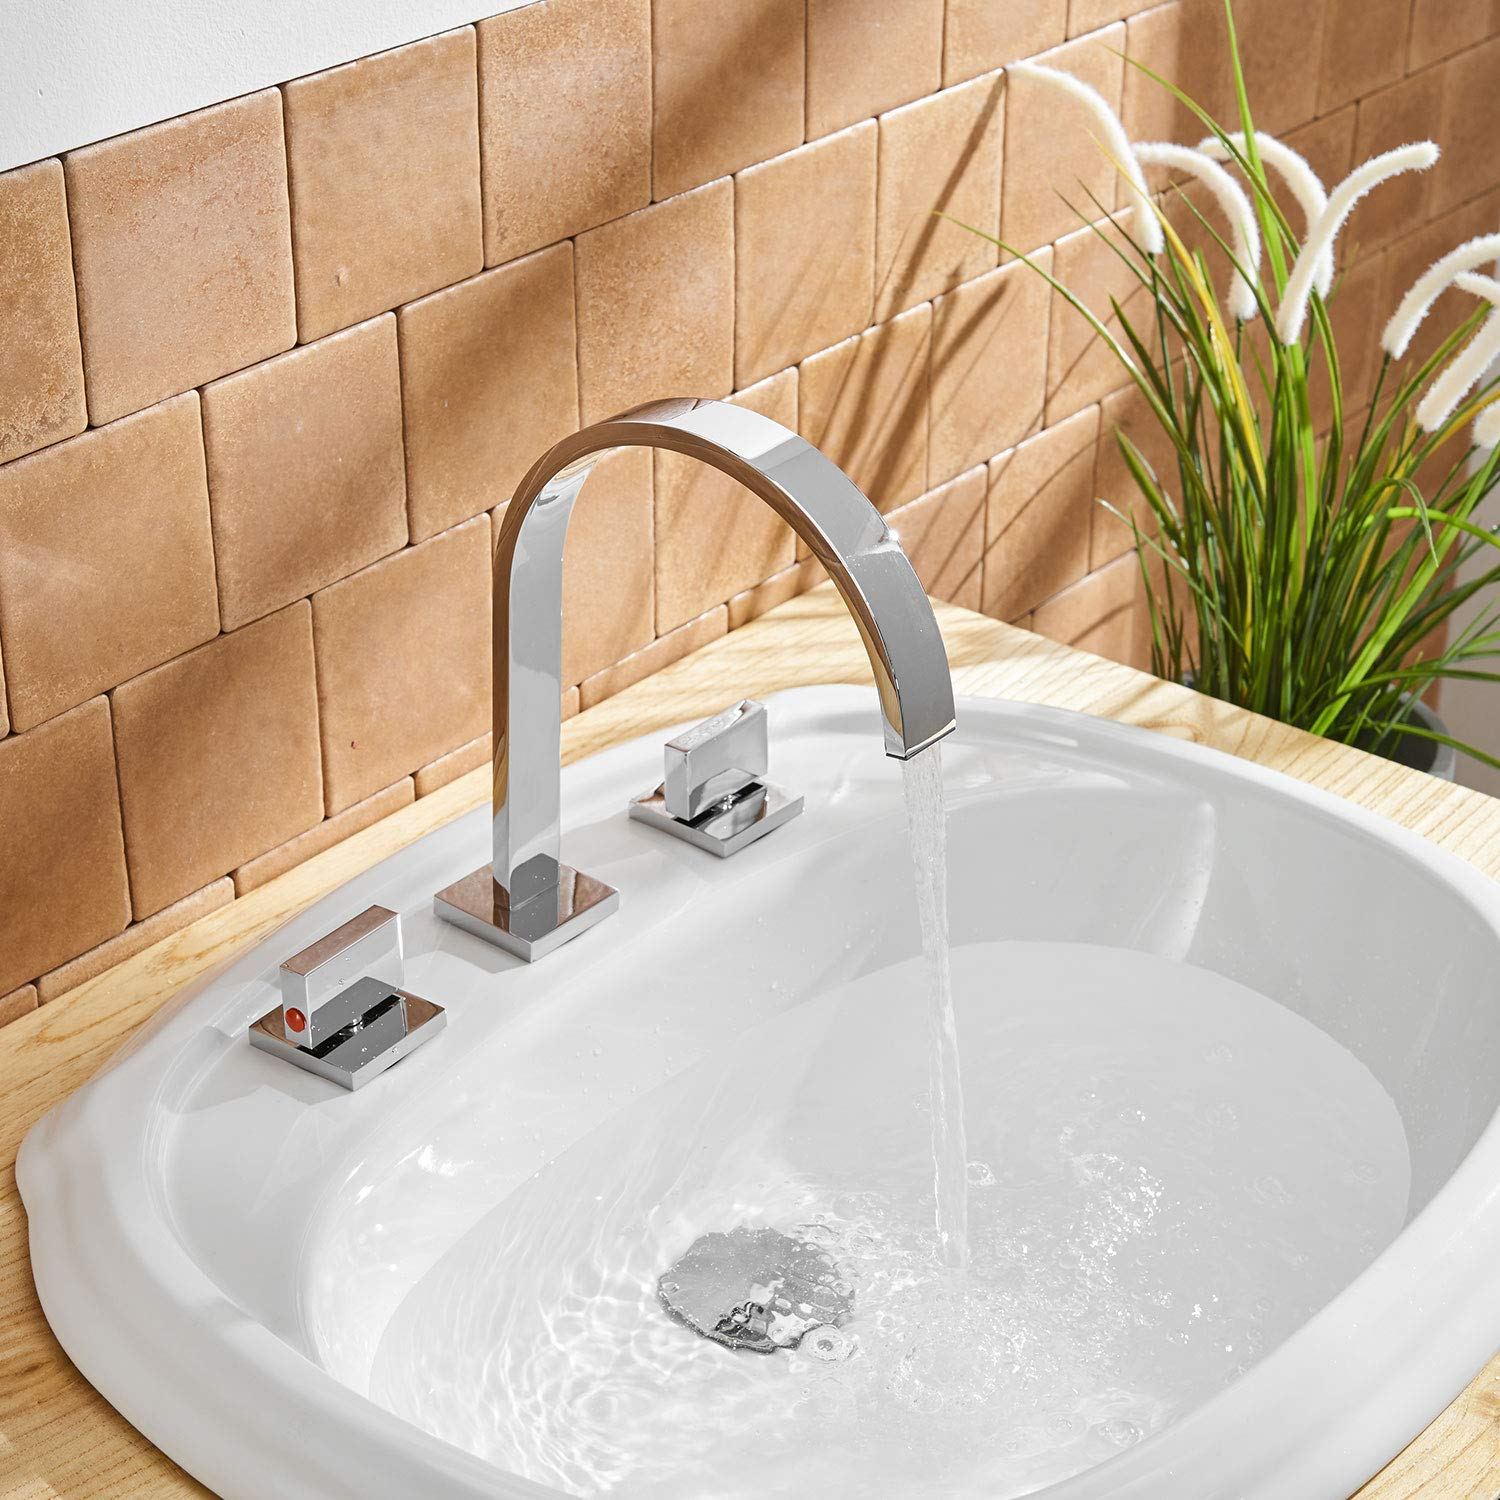 Aquafaucet Waterfall 8-16 Inch Chrome Finish 3 Holes 2 Handles Widespread Bathroom Sink Faucet Commercial